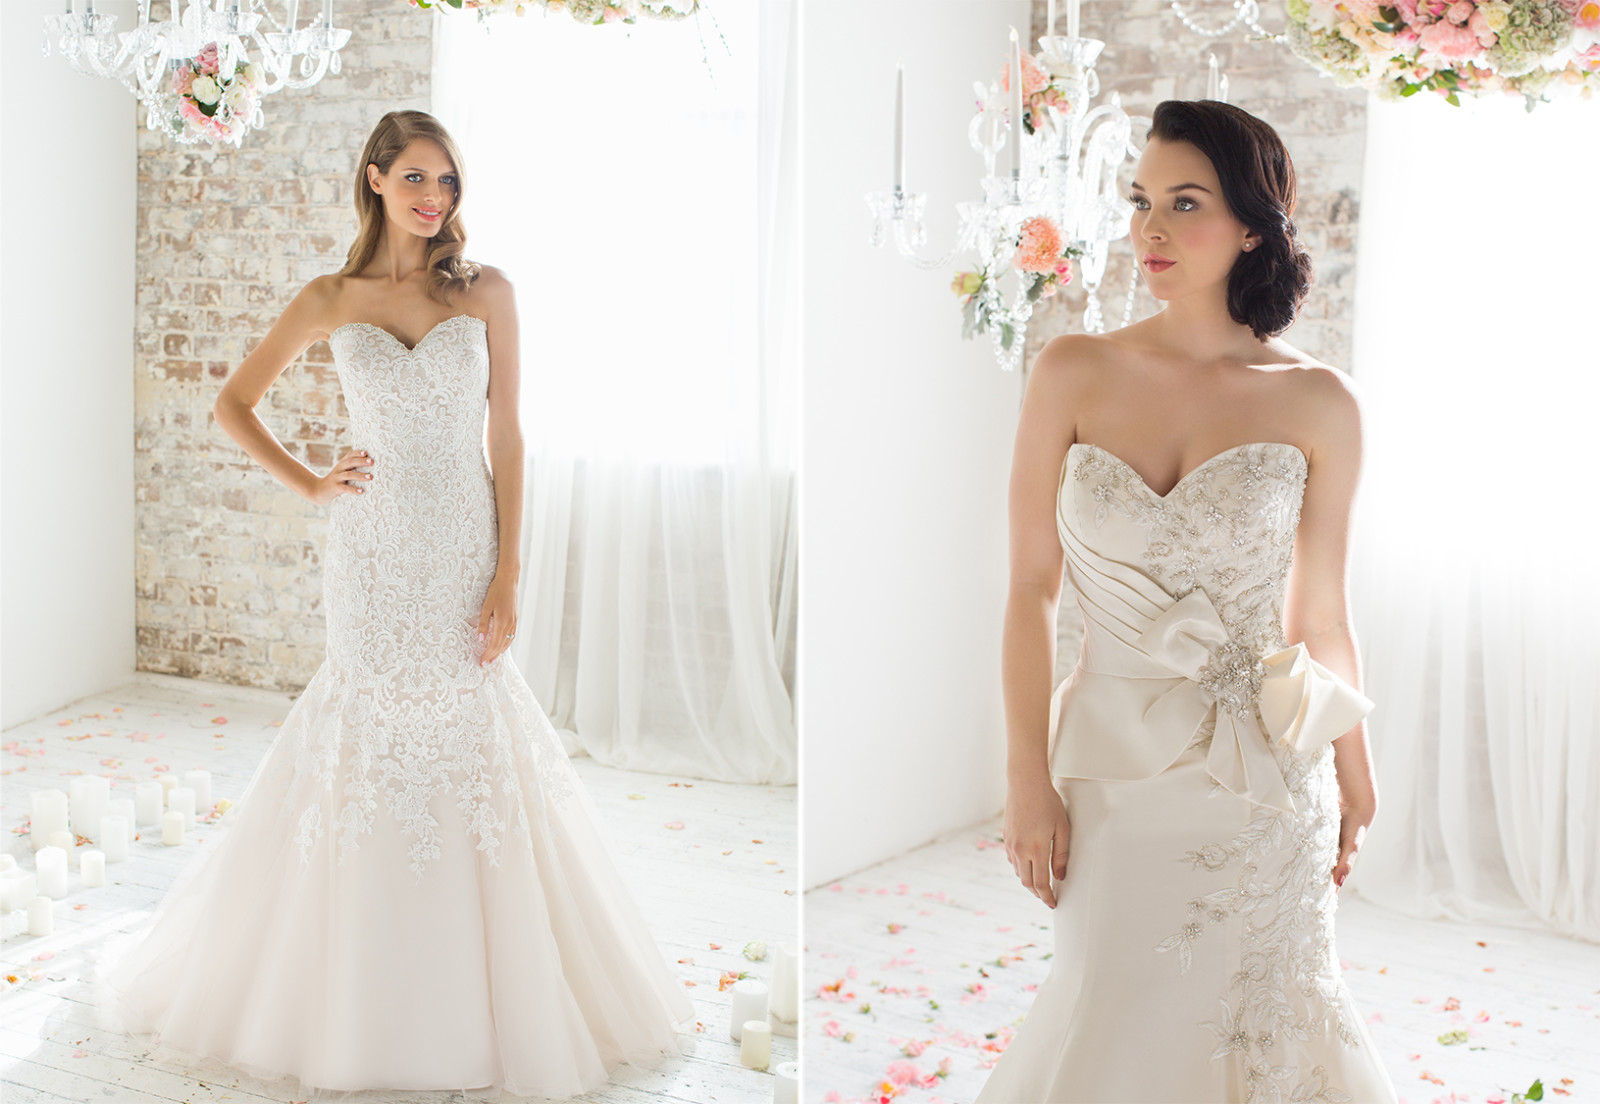 Roz-la-Kelin-2015-Collection-Diamond-Wedding-Gown-Love-Note-Photo